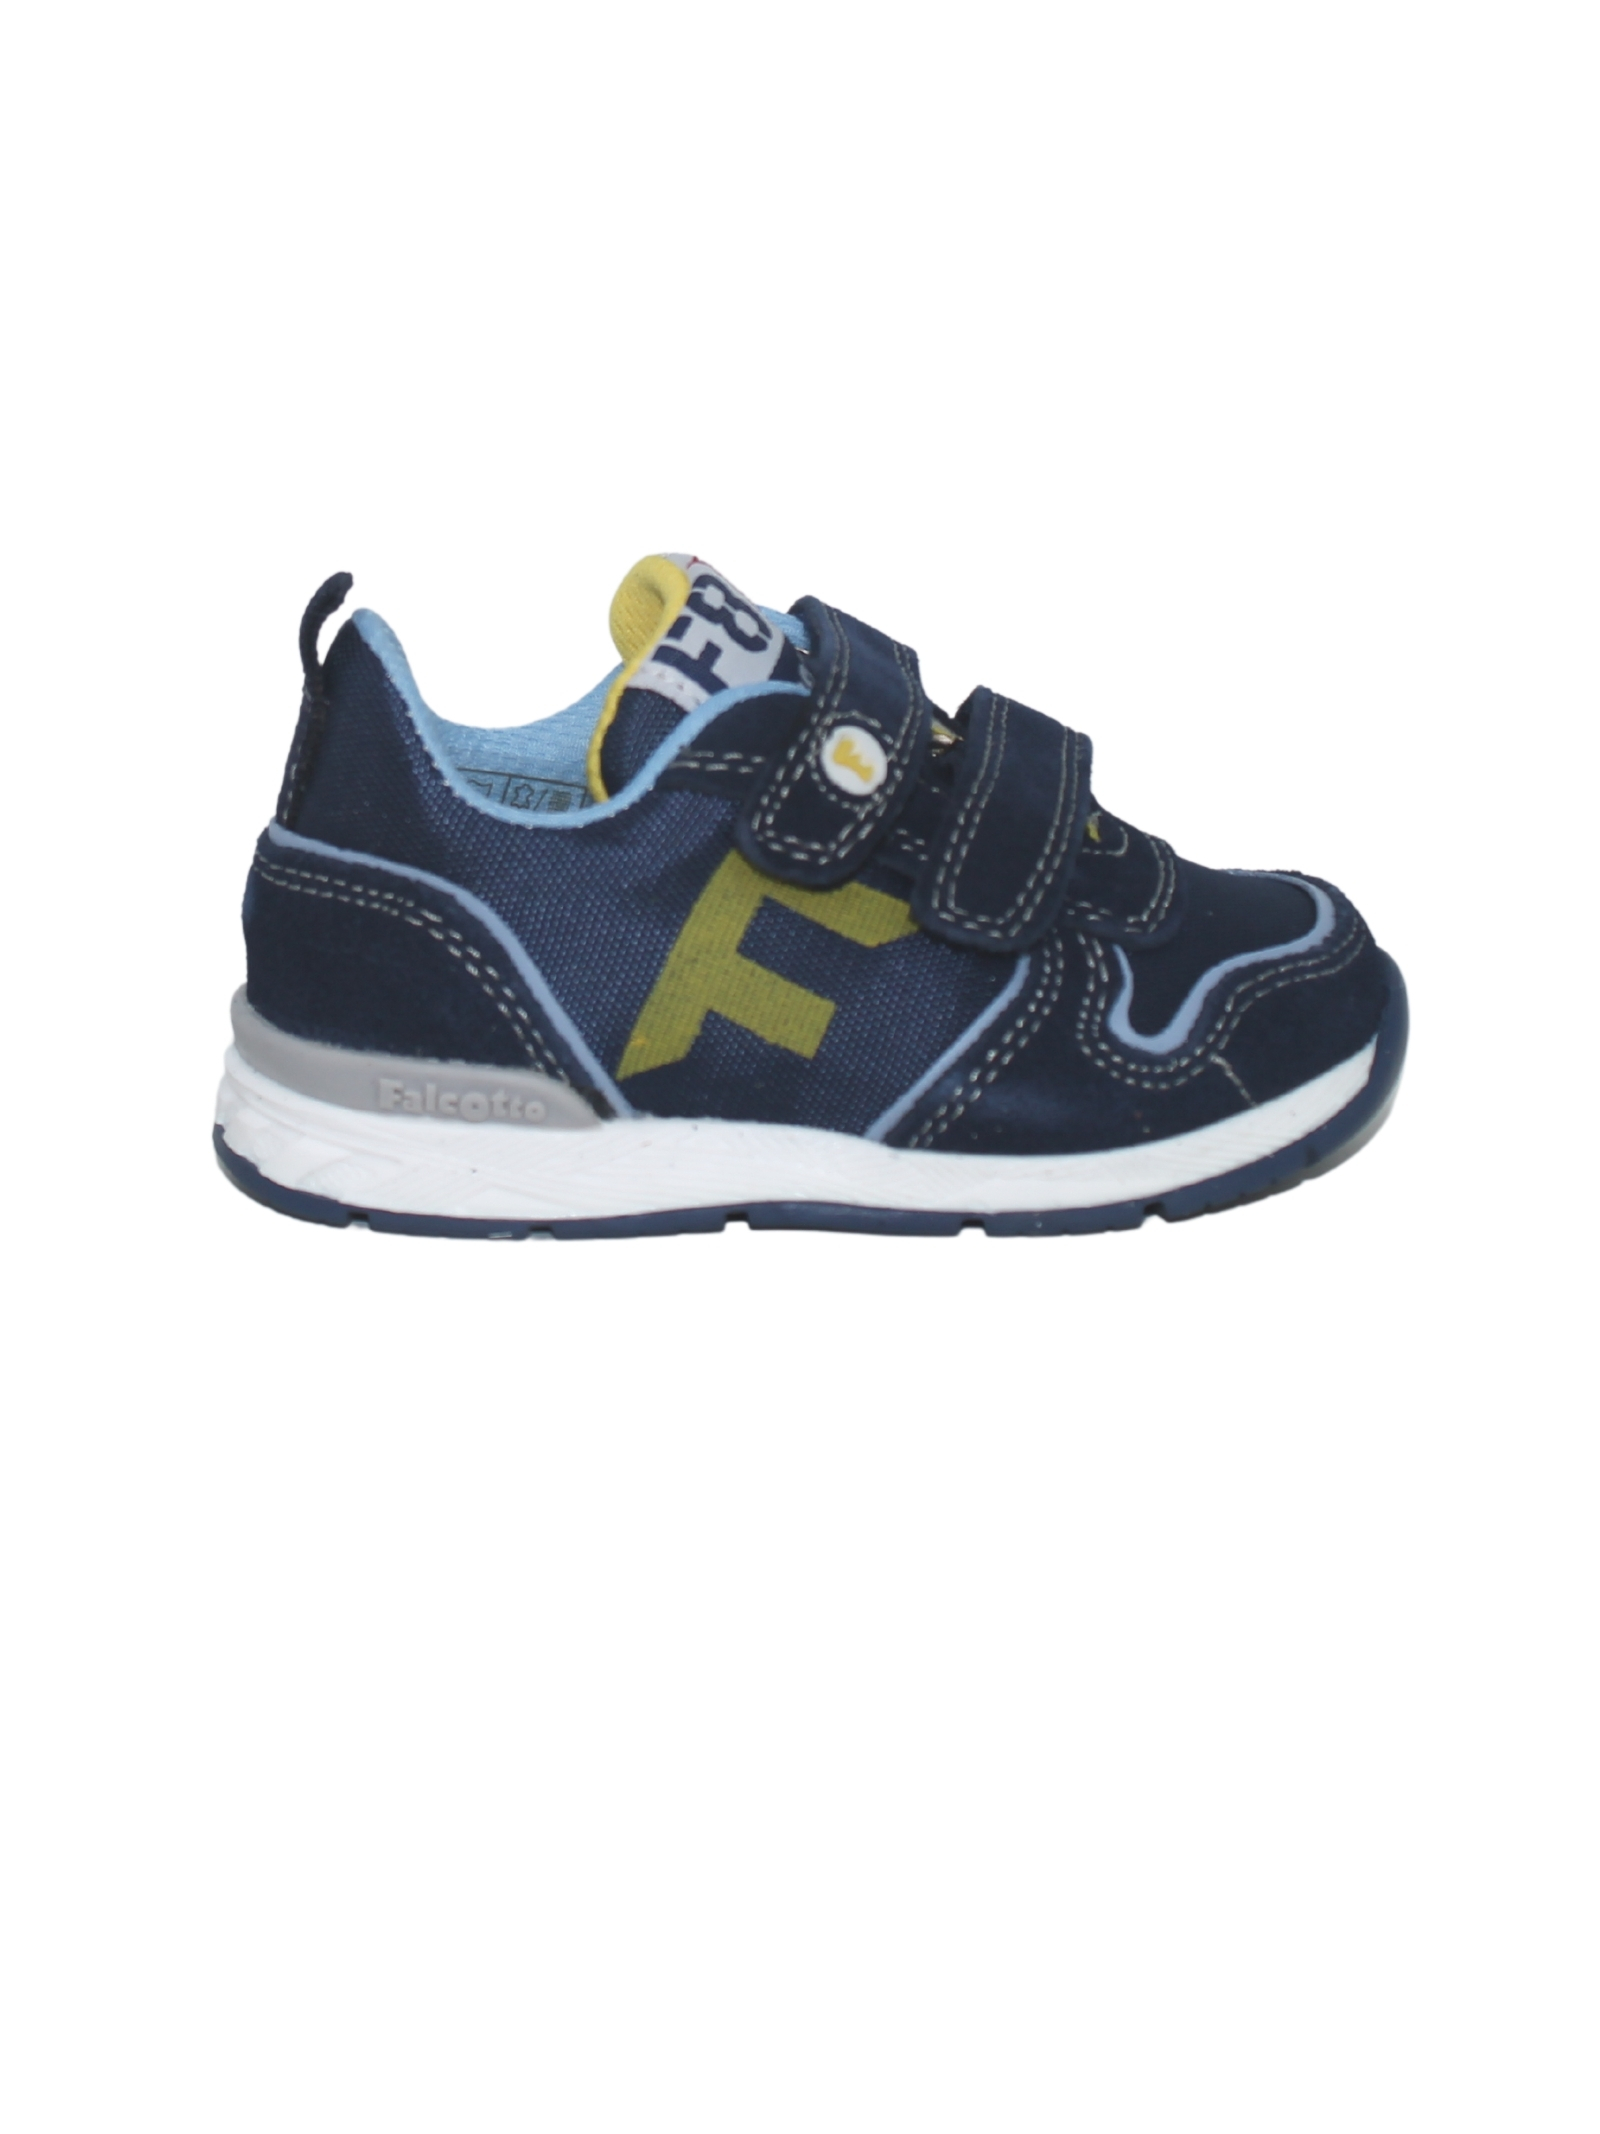 Navy Sport Child Sneakers FALCOTTO | Sneakers | 0012014924050C02NAVY